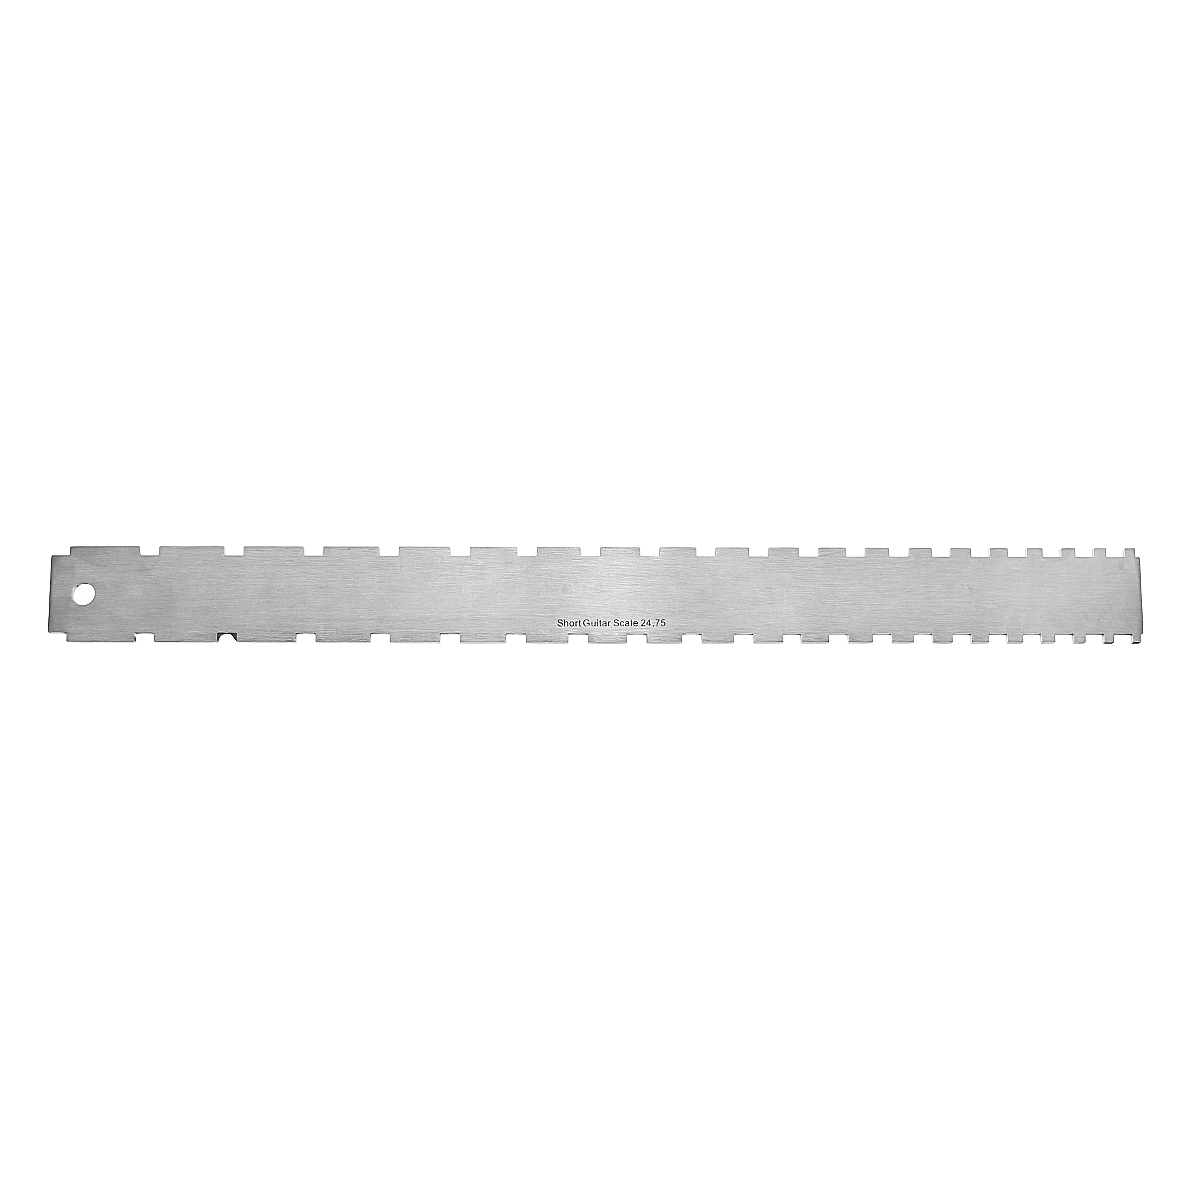 Stainless Steel Guitar Neck Notched Straight Edge Dual Scale Measuring Tool Guitar Fret Ruler for Measuring Fretboard